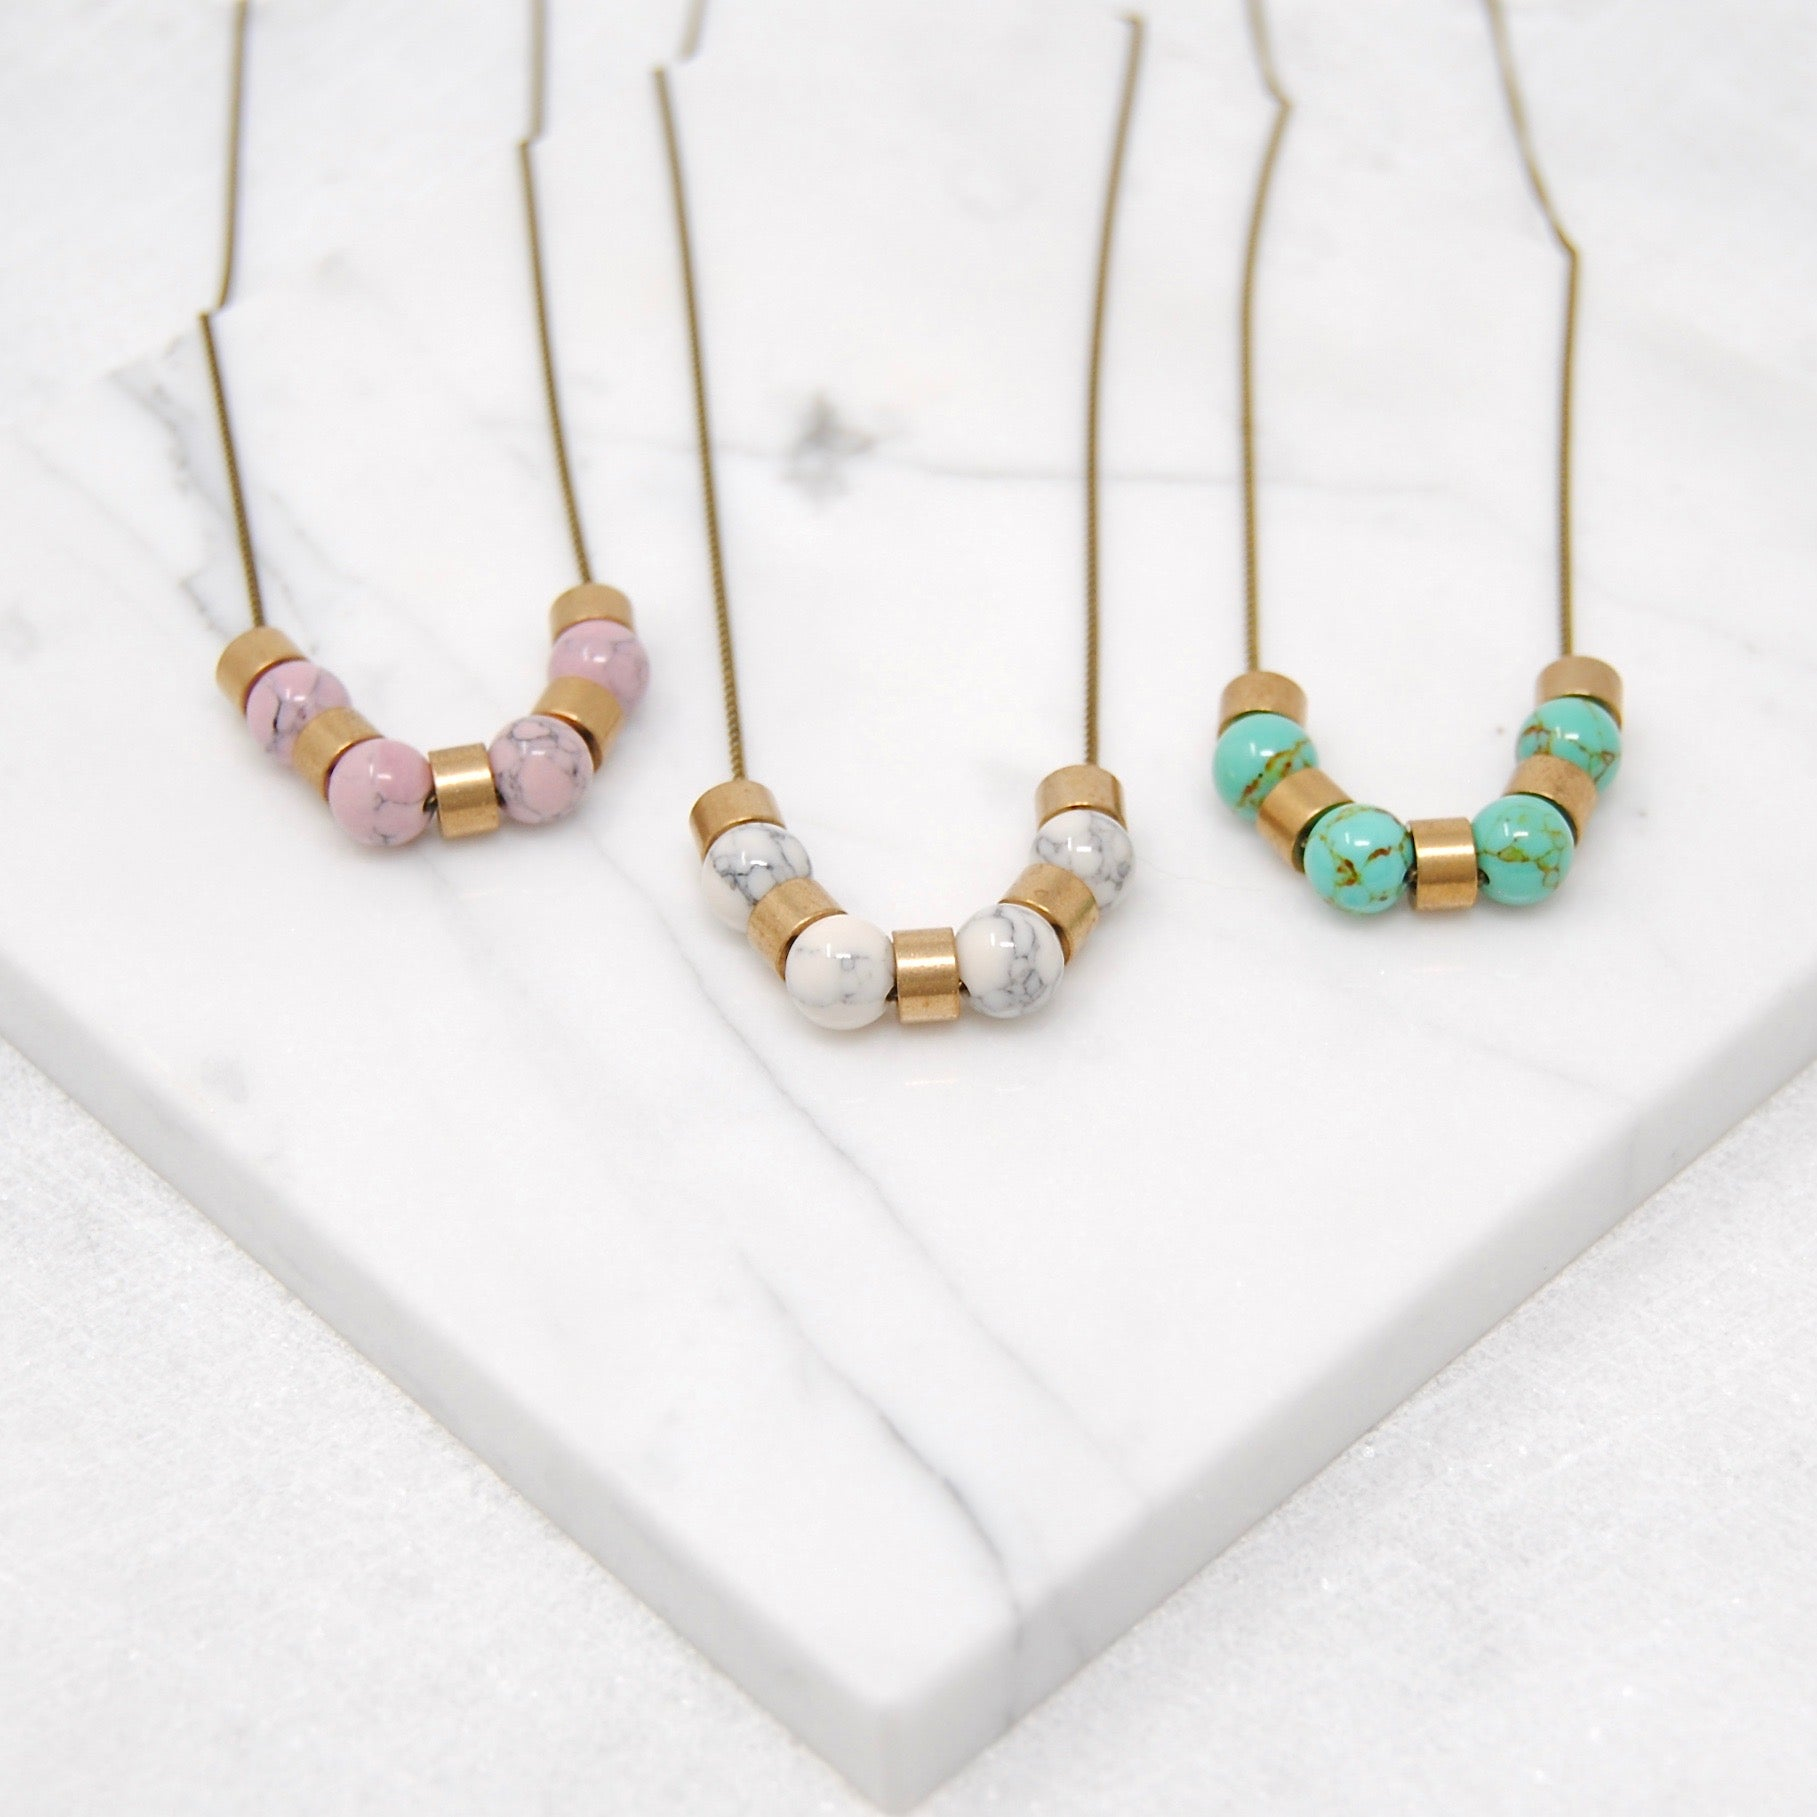 MINIMAL MARBLE NECKLACE